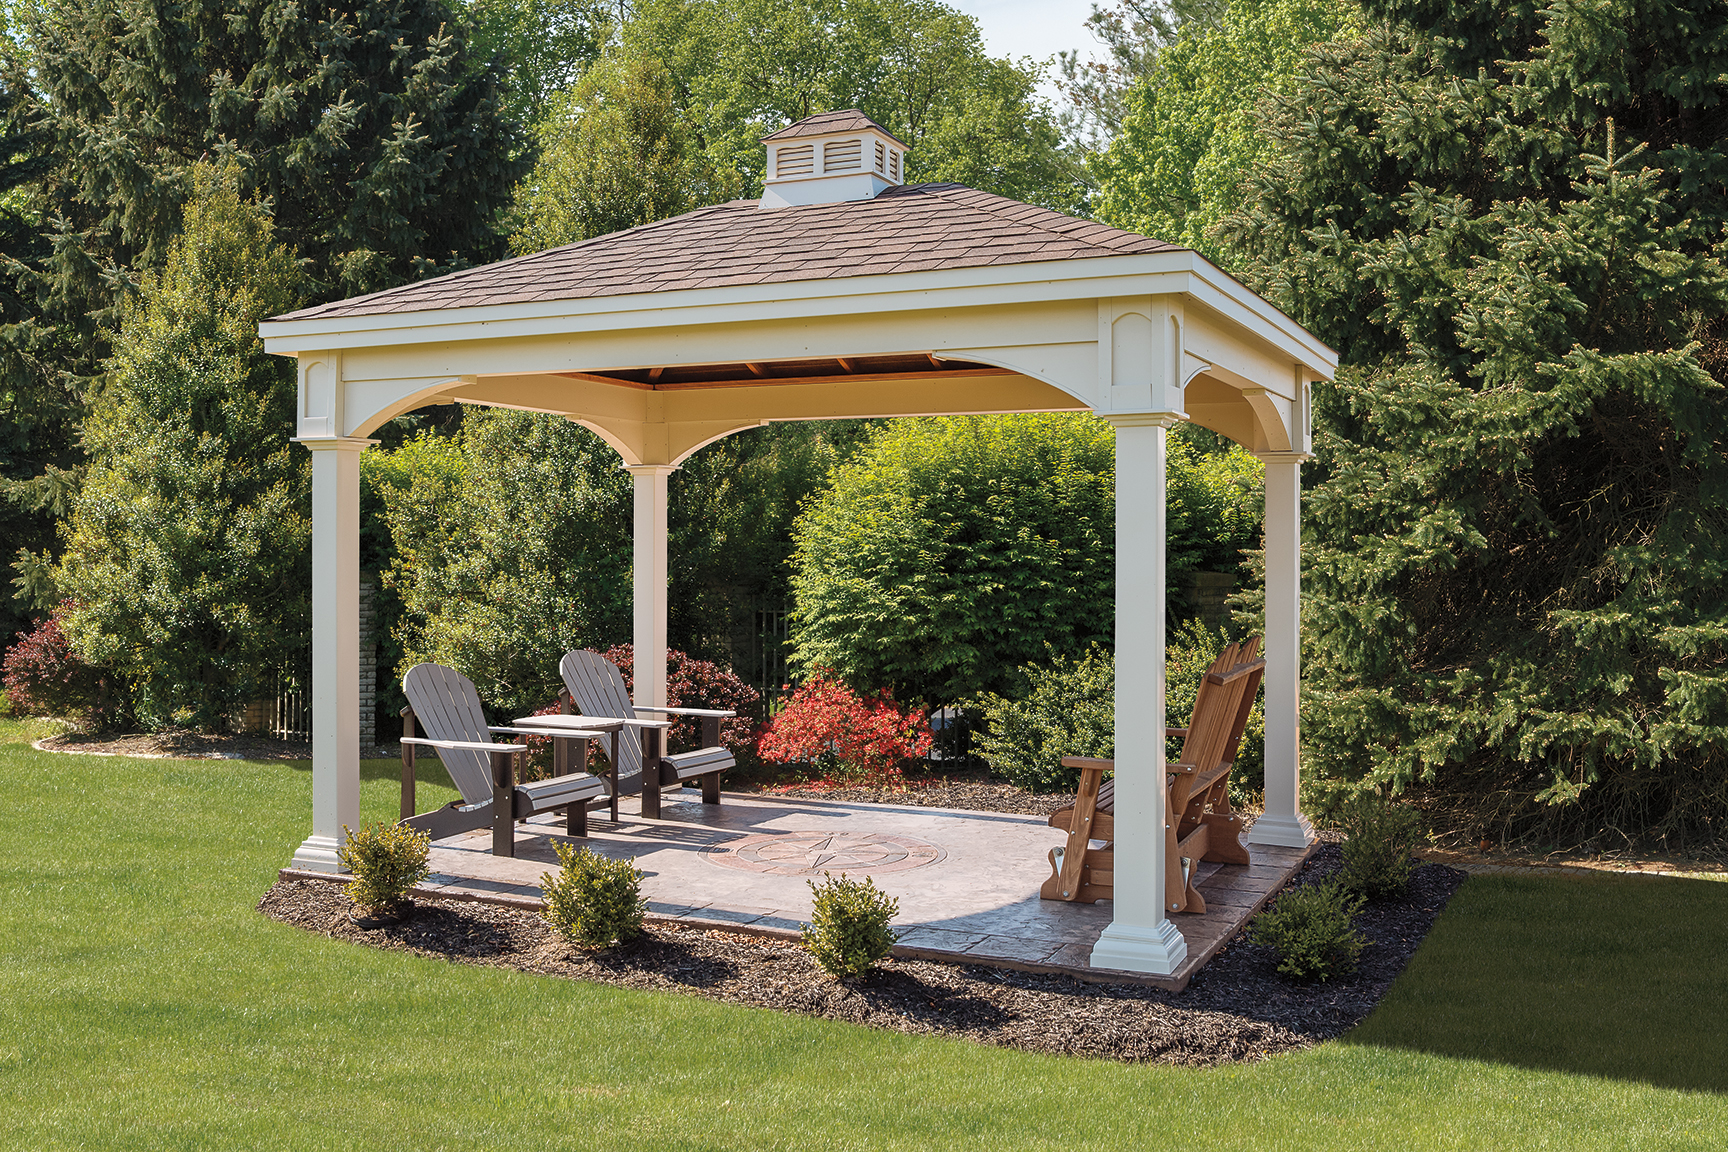 Manor Style Vinyl Pavilion - Kit/Build on Site | Backyard ...